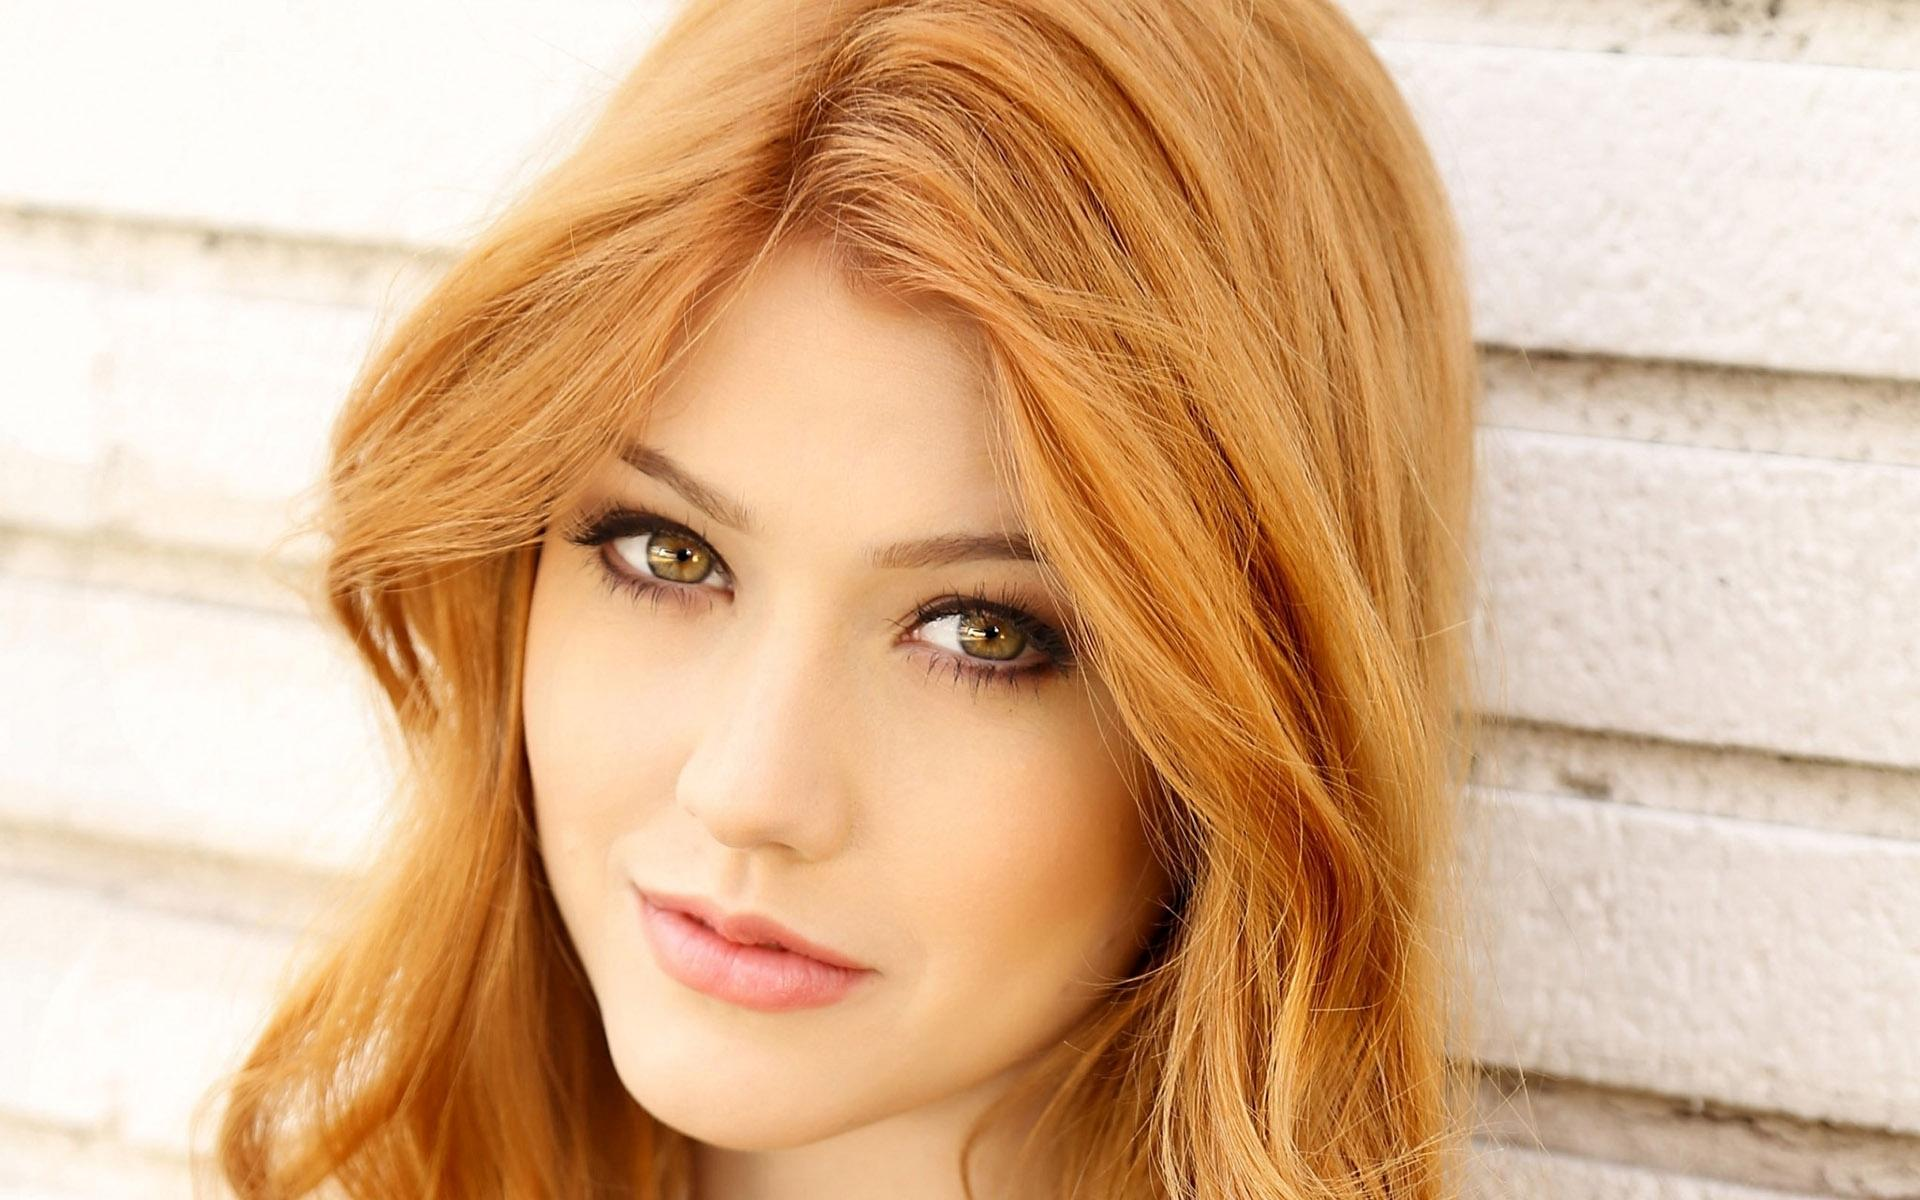 25 Hd Katherine Mcnamara Wallpapers Hdwallsource Com